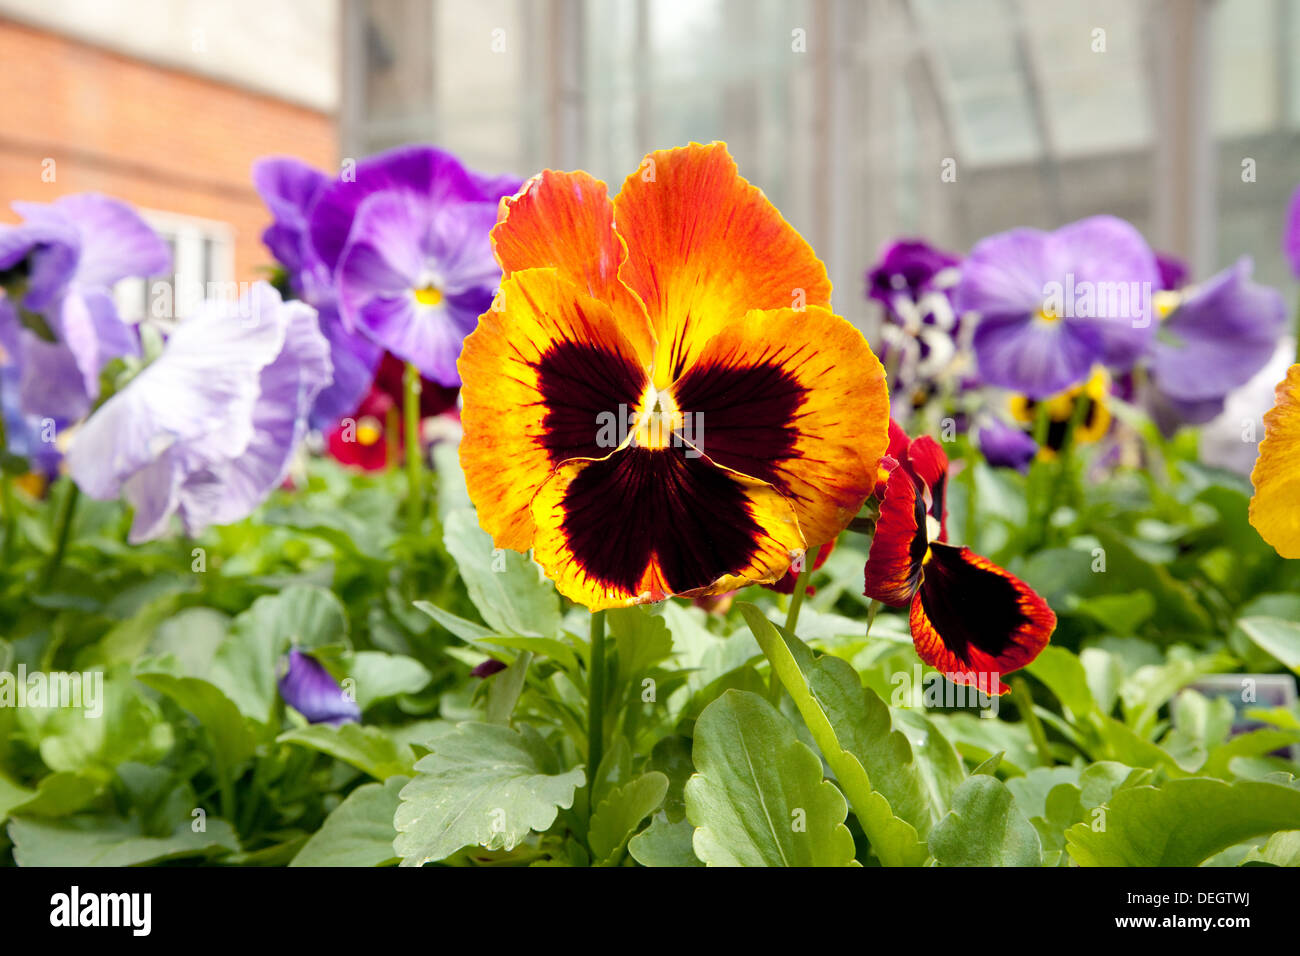 Colorful pansies in flower, UK - Stock Image